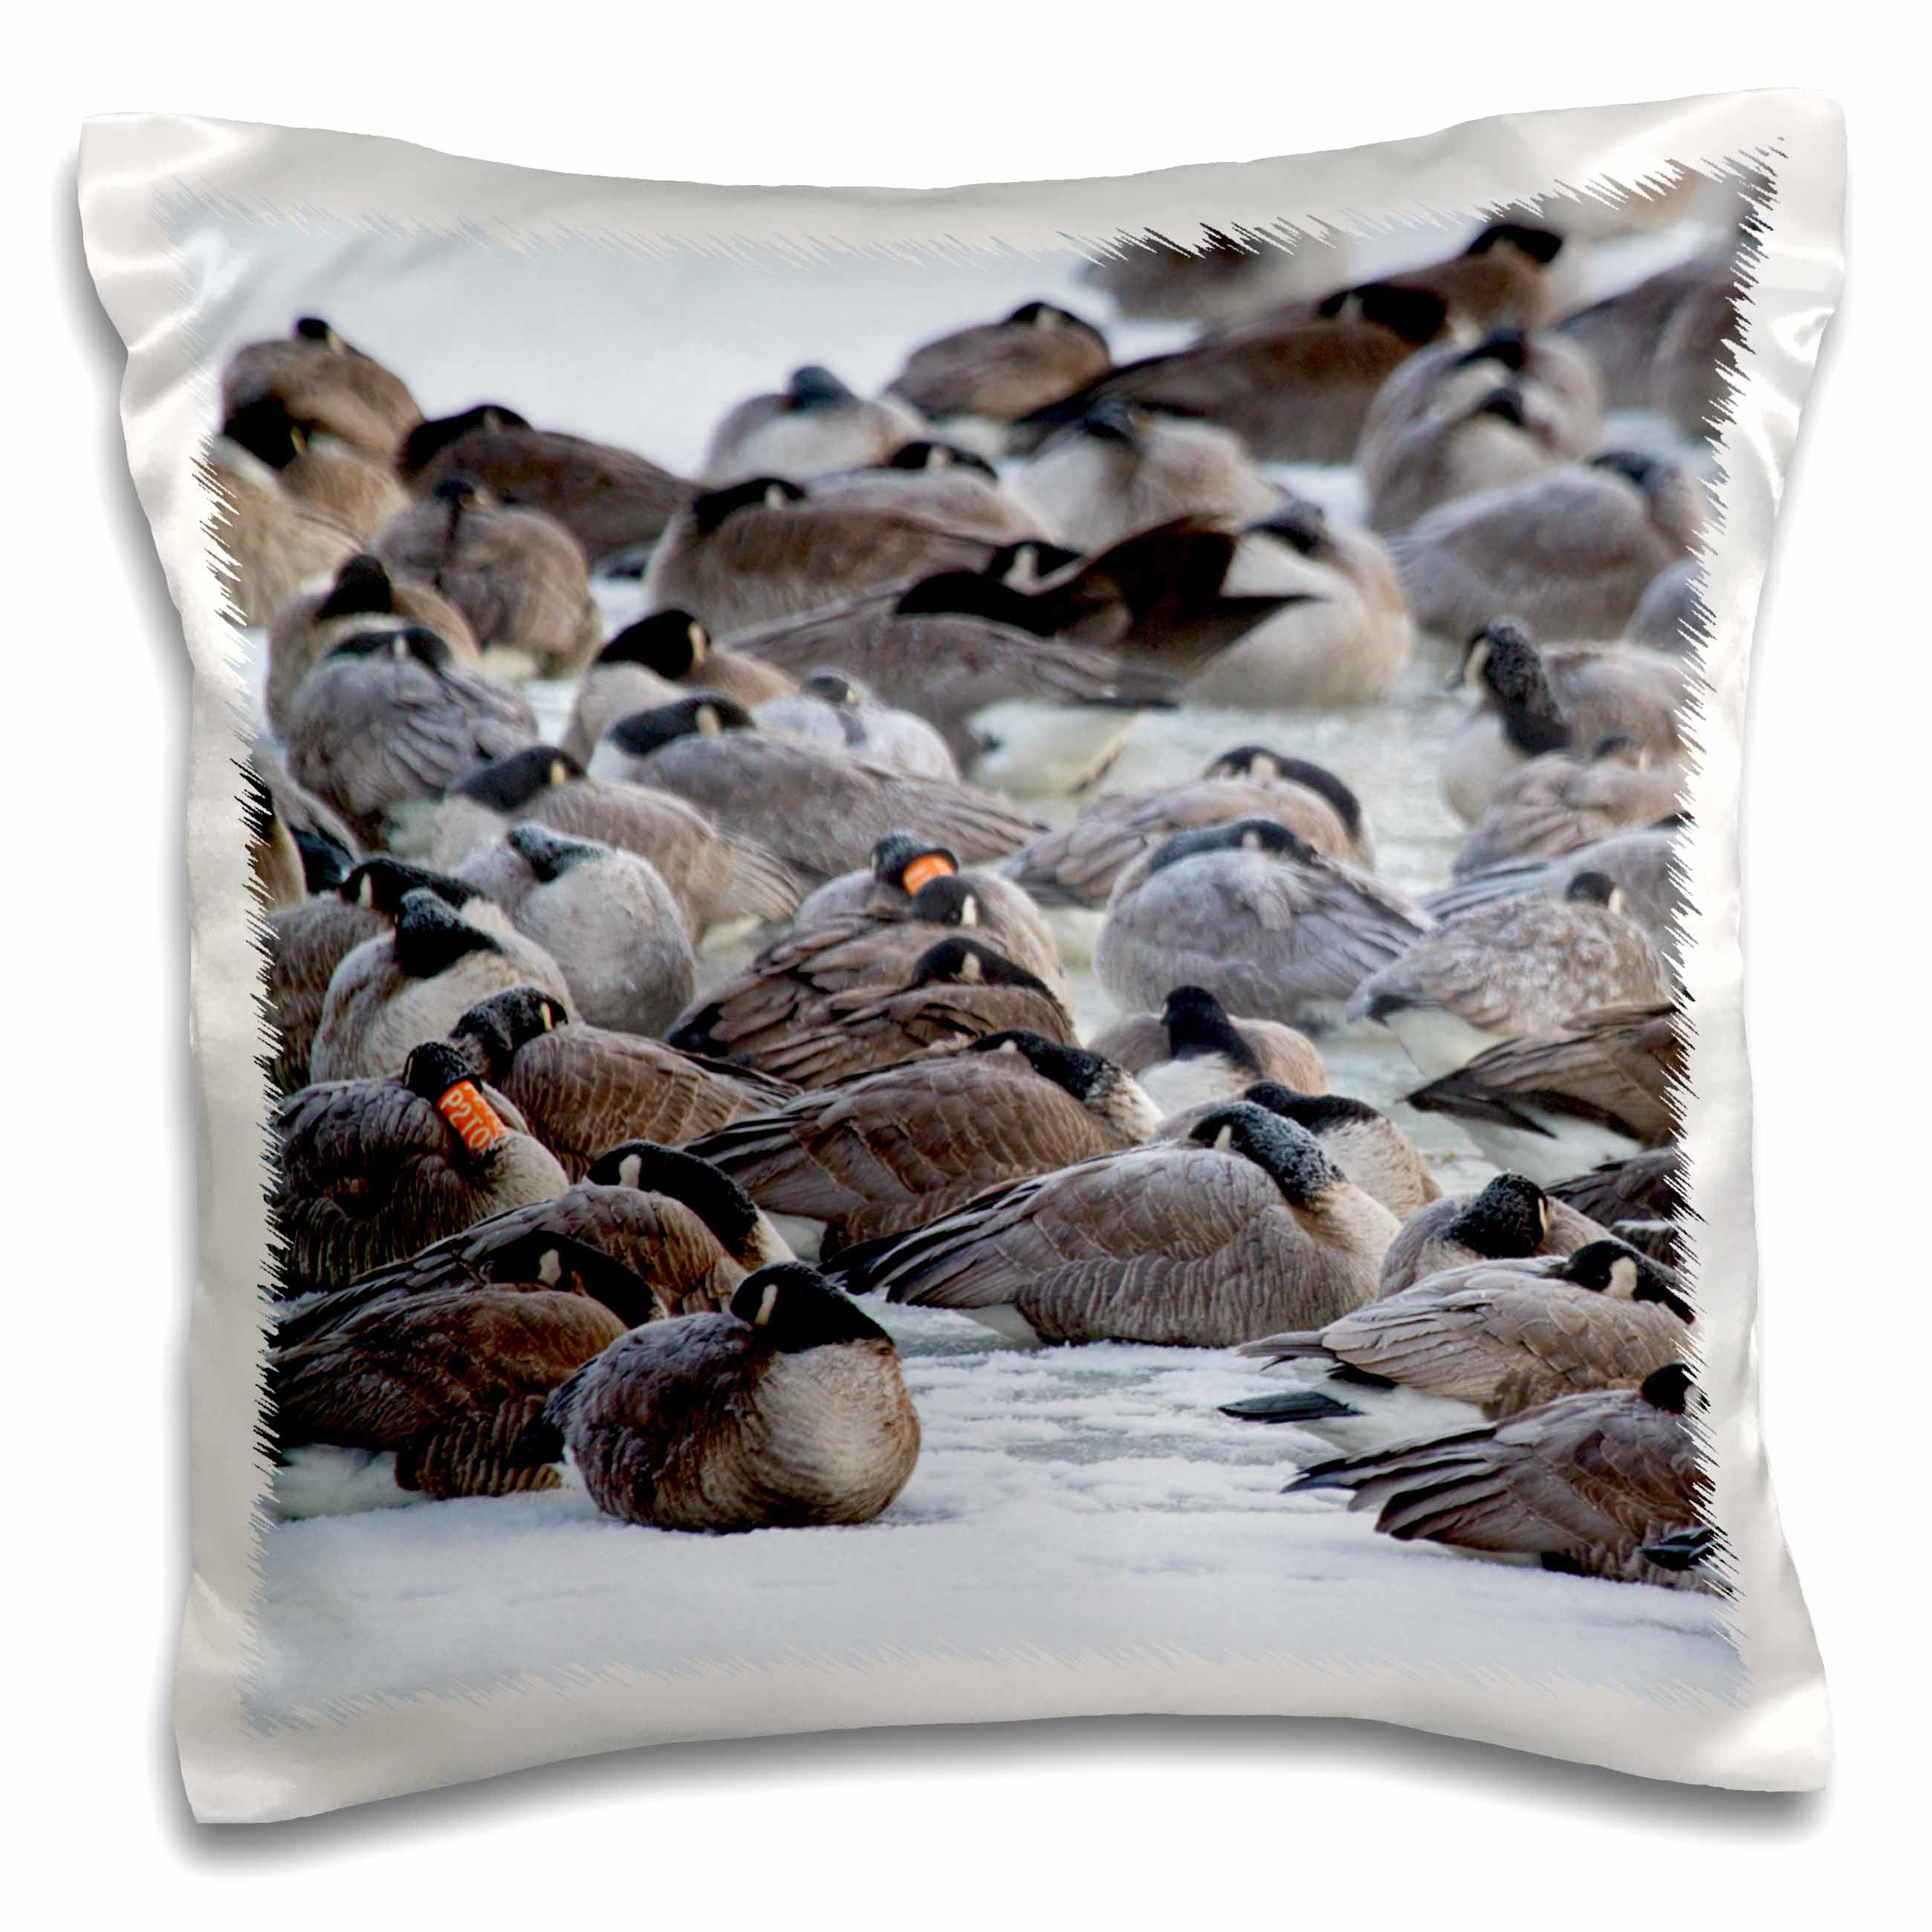 3drose Illinois Canada Geese Flock On Frozen Lake Pillow Case 16 By 16 Inch Walmart Com Walmart Com